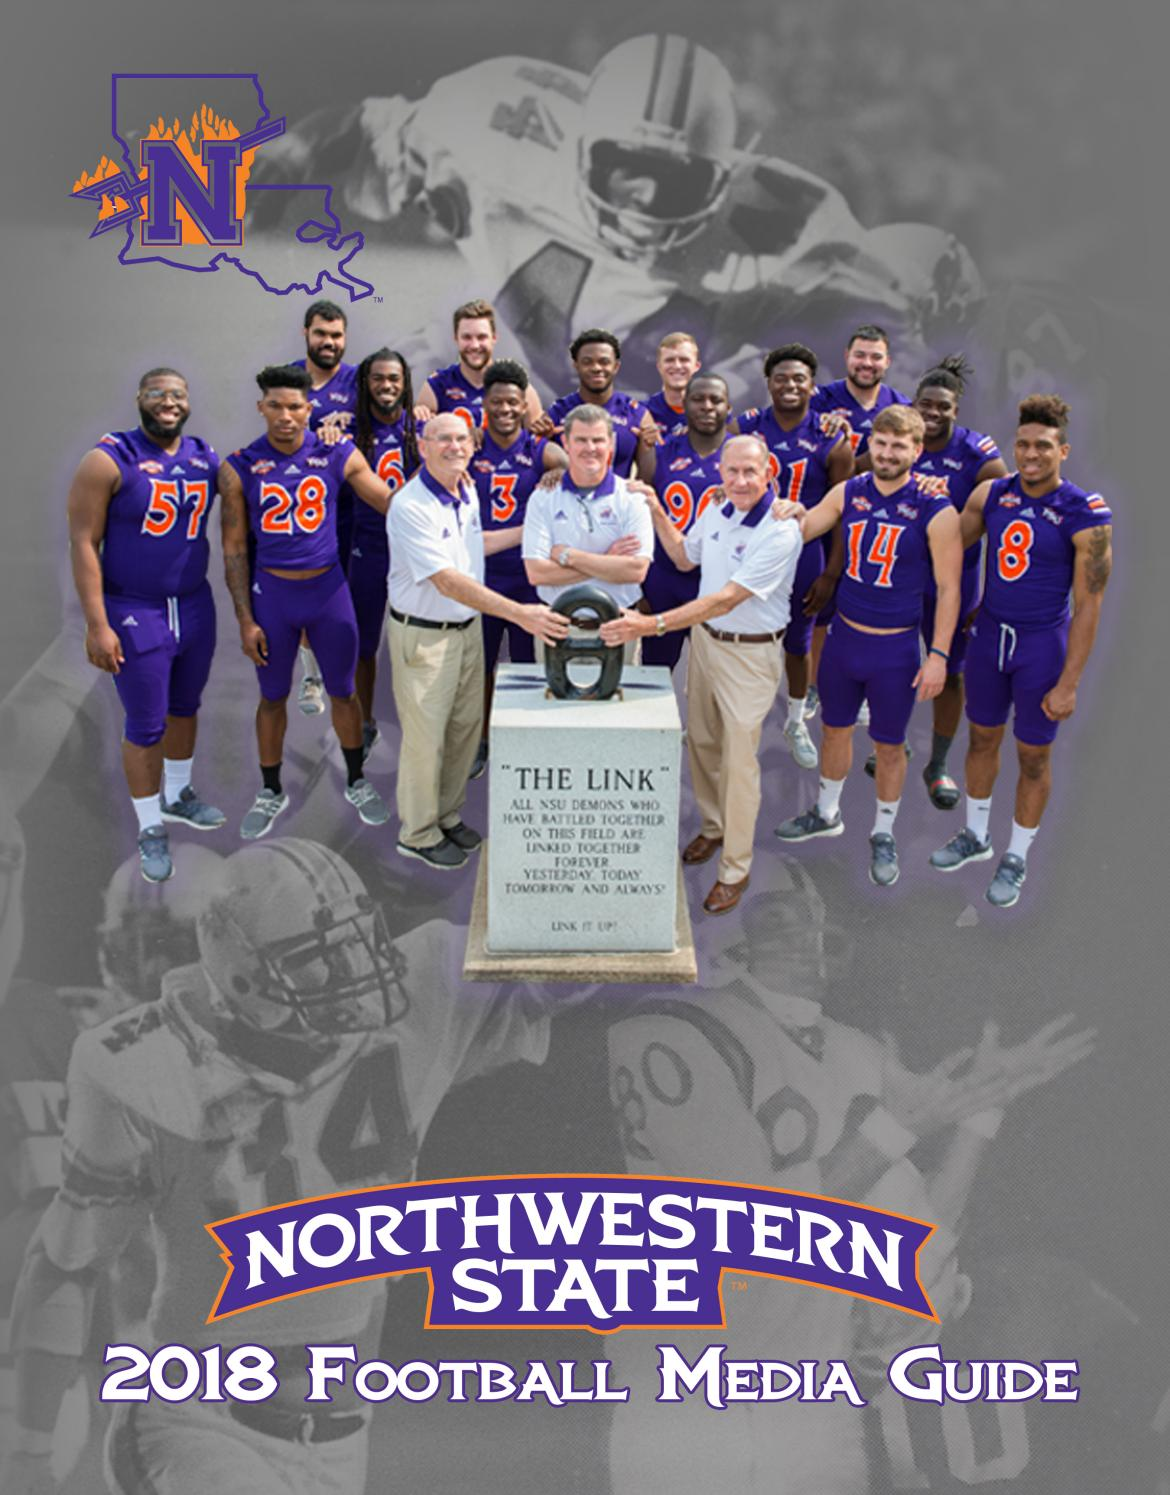 46f590c02bc 2018 Northwestern State Football Media Guide by Northwestern State Sports  Information - issuu